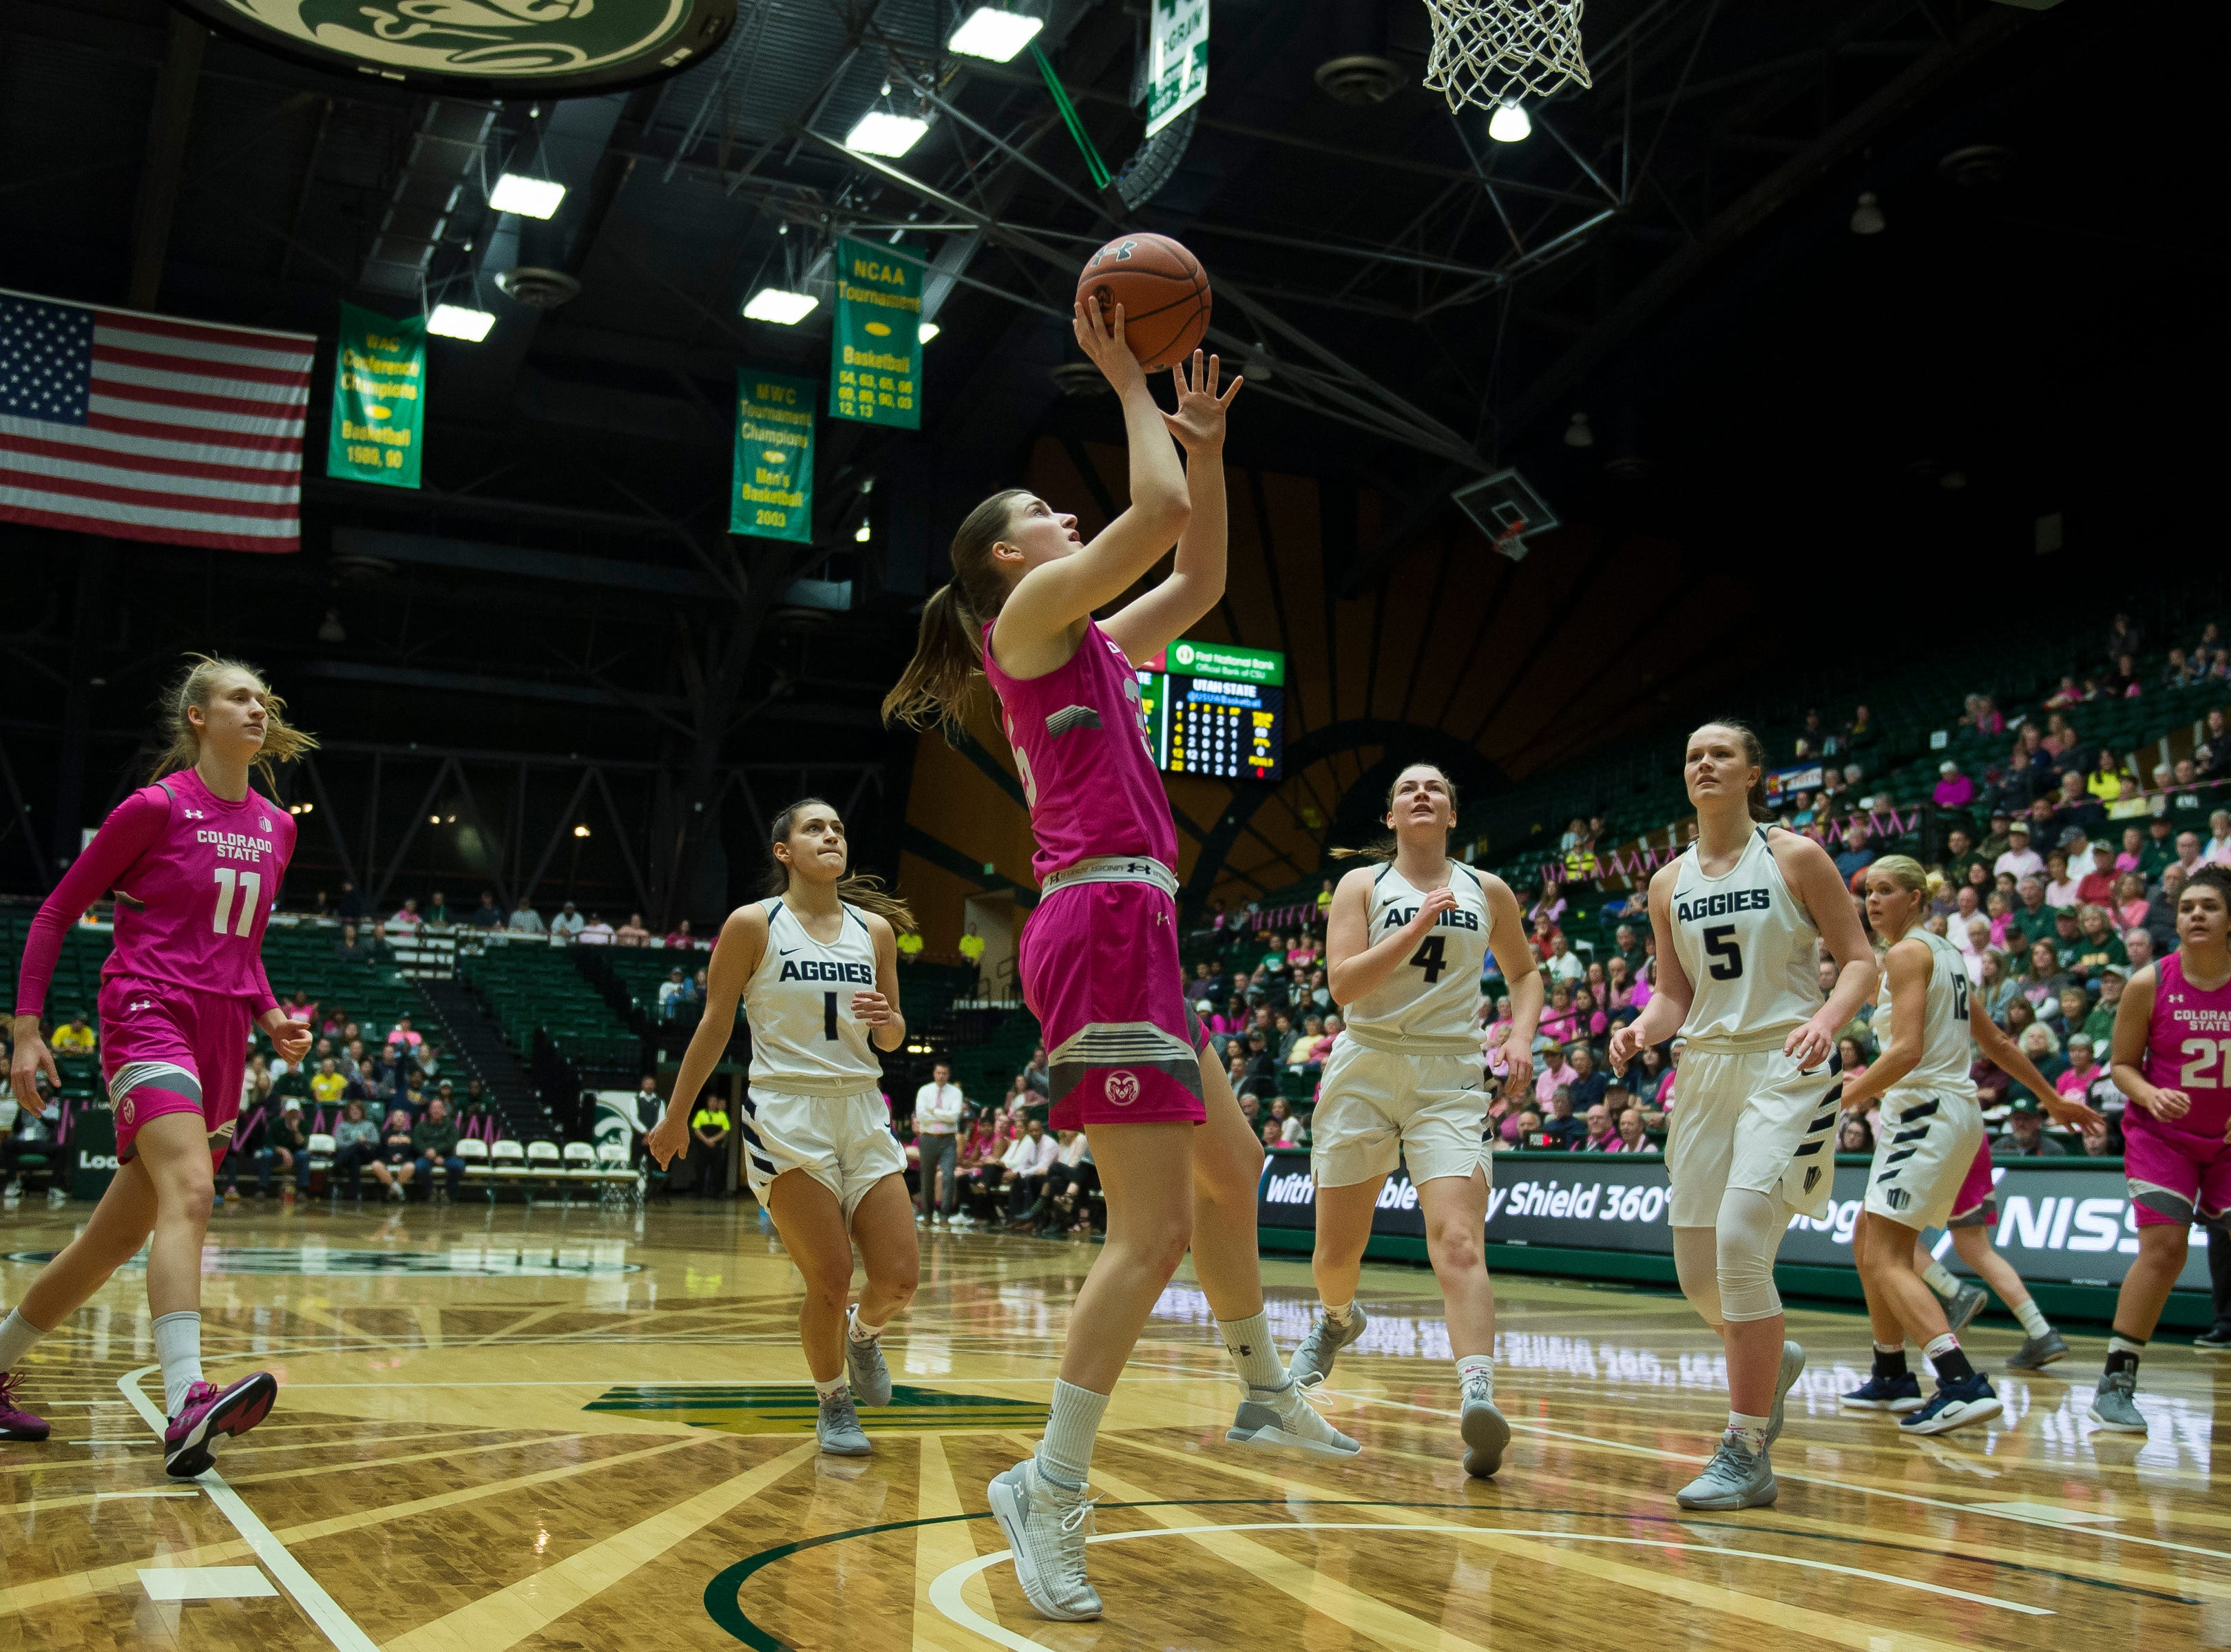 Colorado State University sophomore guard Lore Devos (35) gets past Utah State defenders for an easy layup on Saturday, Jan. 19, 2019, at Moby Arena in Fort Collins, Colo.